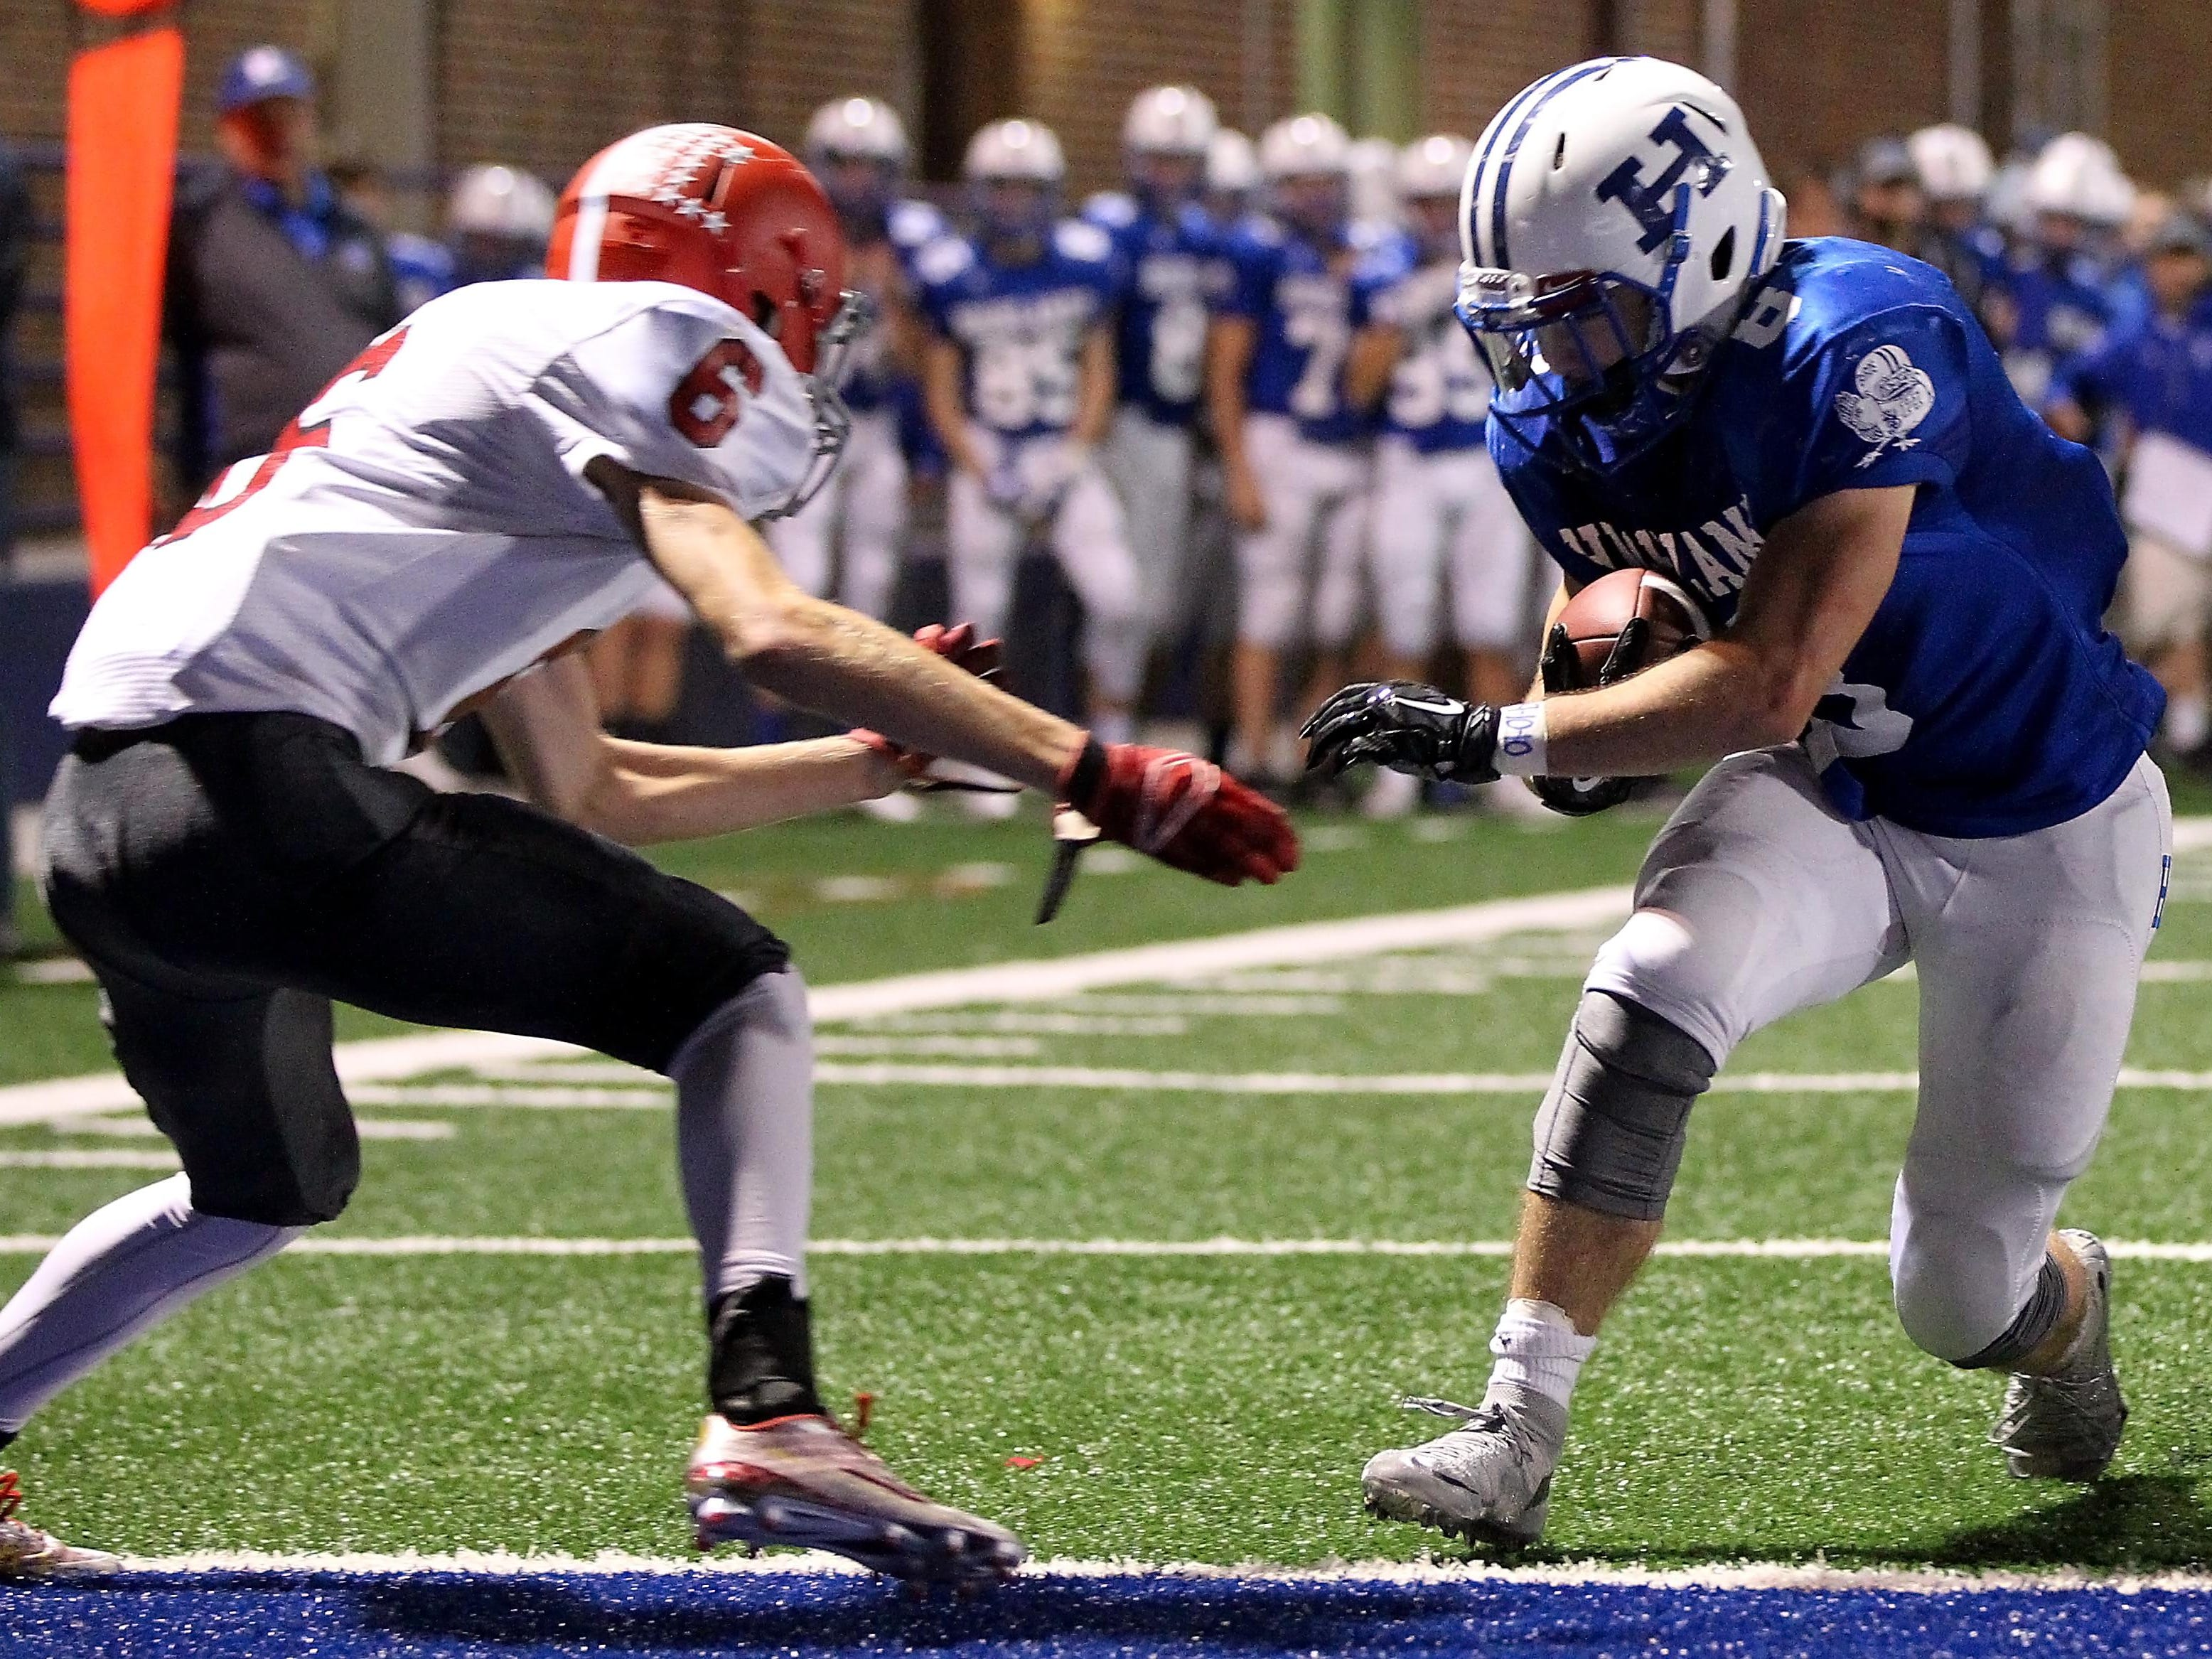 Highlands running back Nick Kendall scores his second touchdown of the game against Dixie Heights Oct. 9.